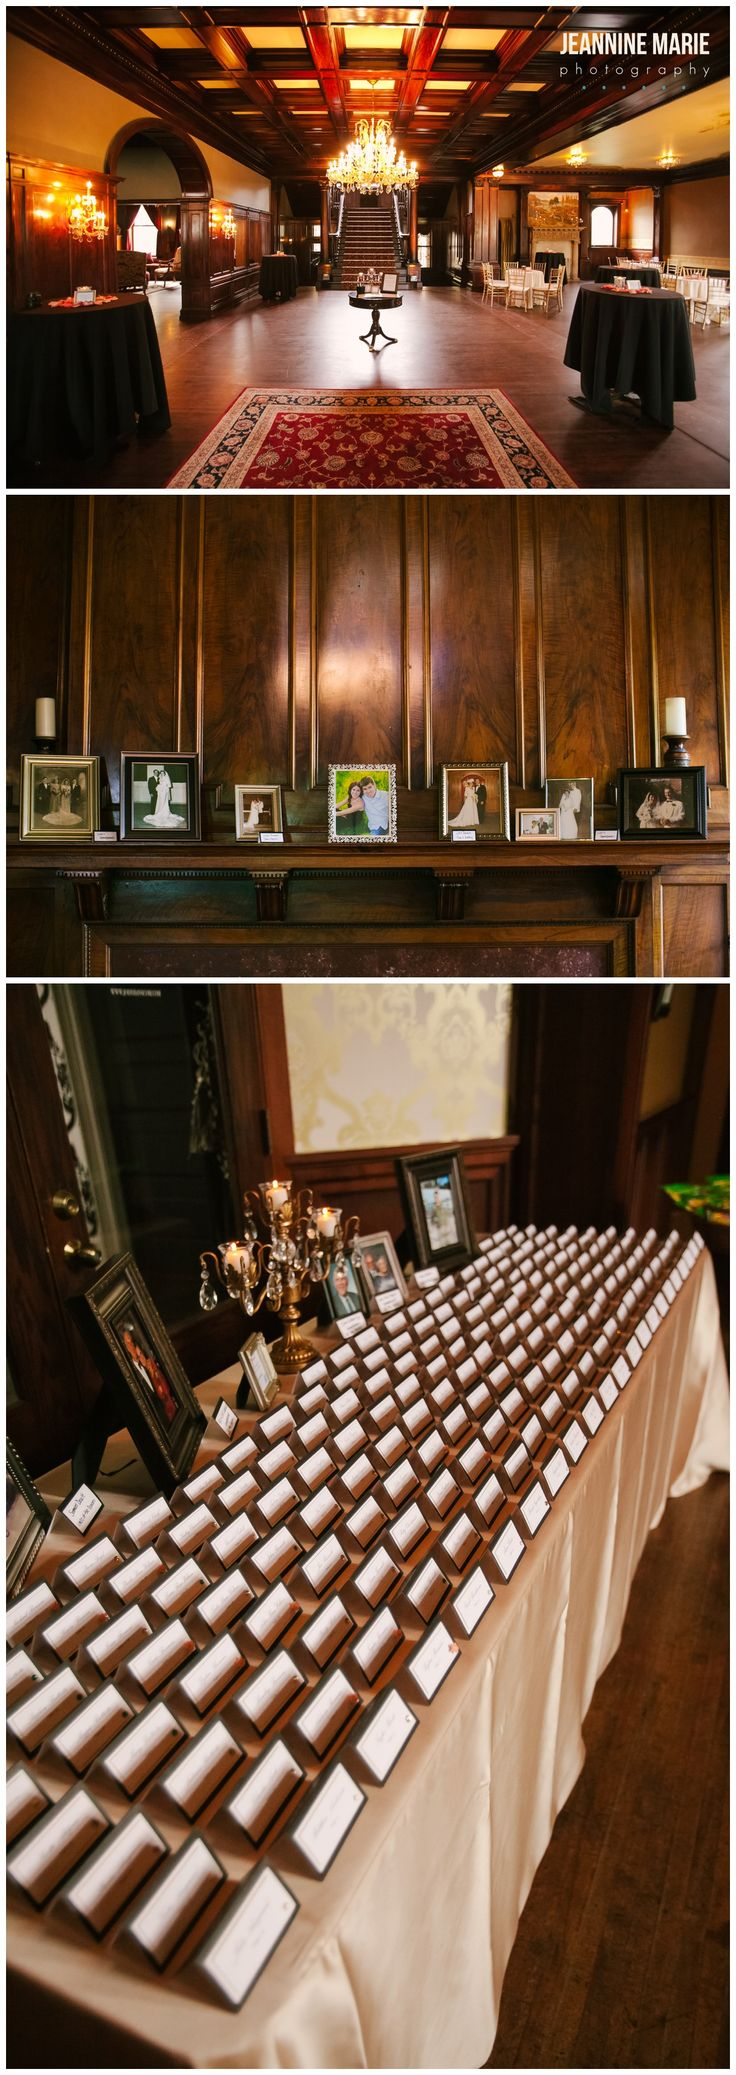 Semple Mansion wedding decor at Minneapolis, MN. Photos by Minnesota wedding…